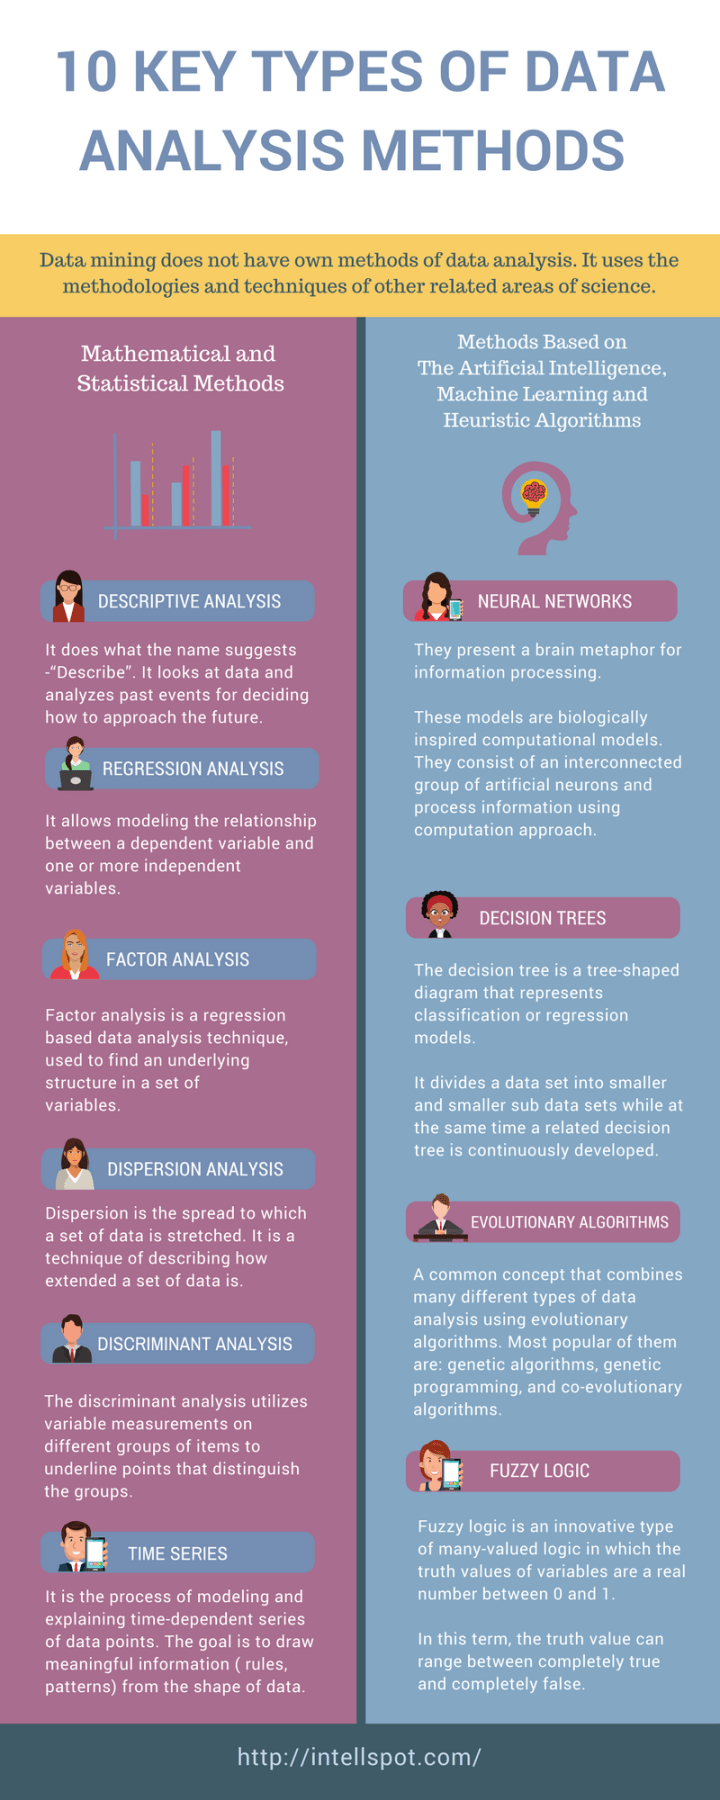 10 Key Types of Data Analysis Methods Infographic